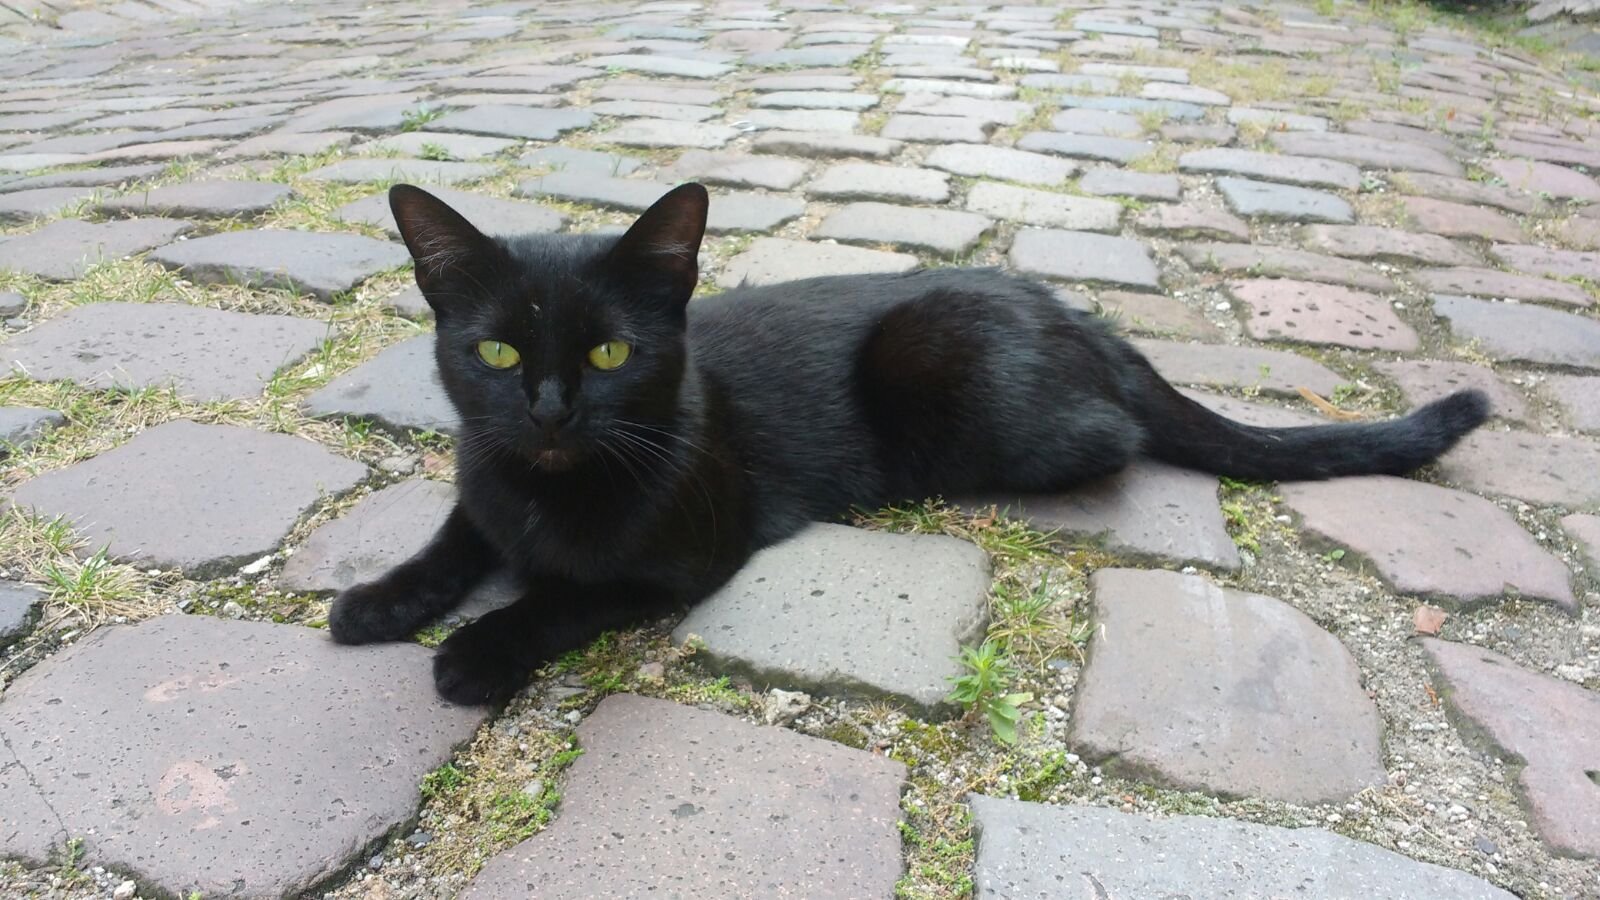 saw this beauty black cat on the streets today